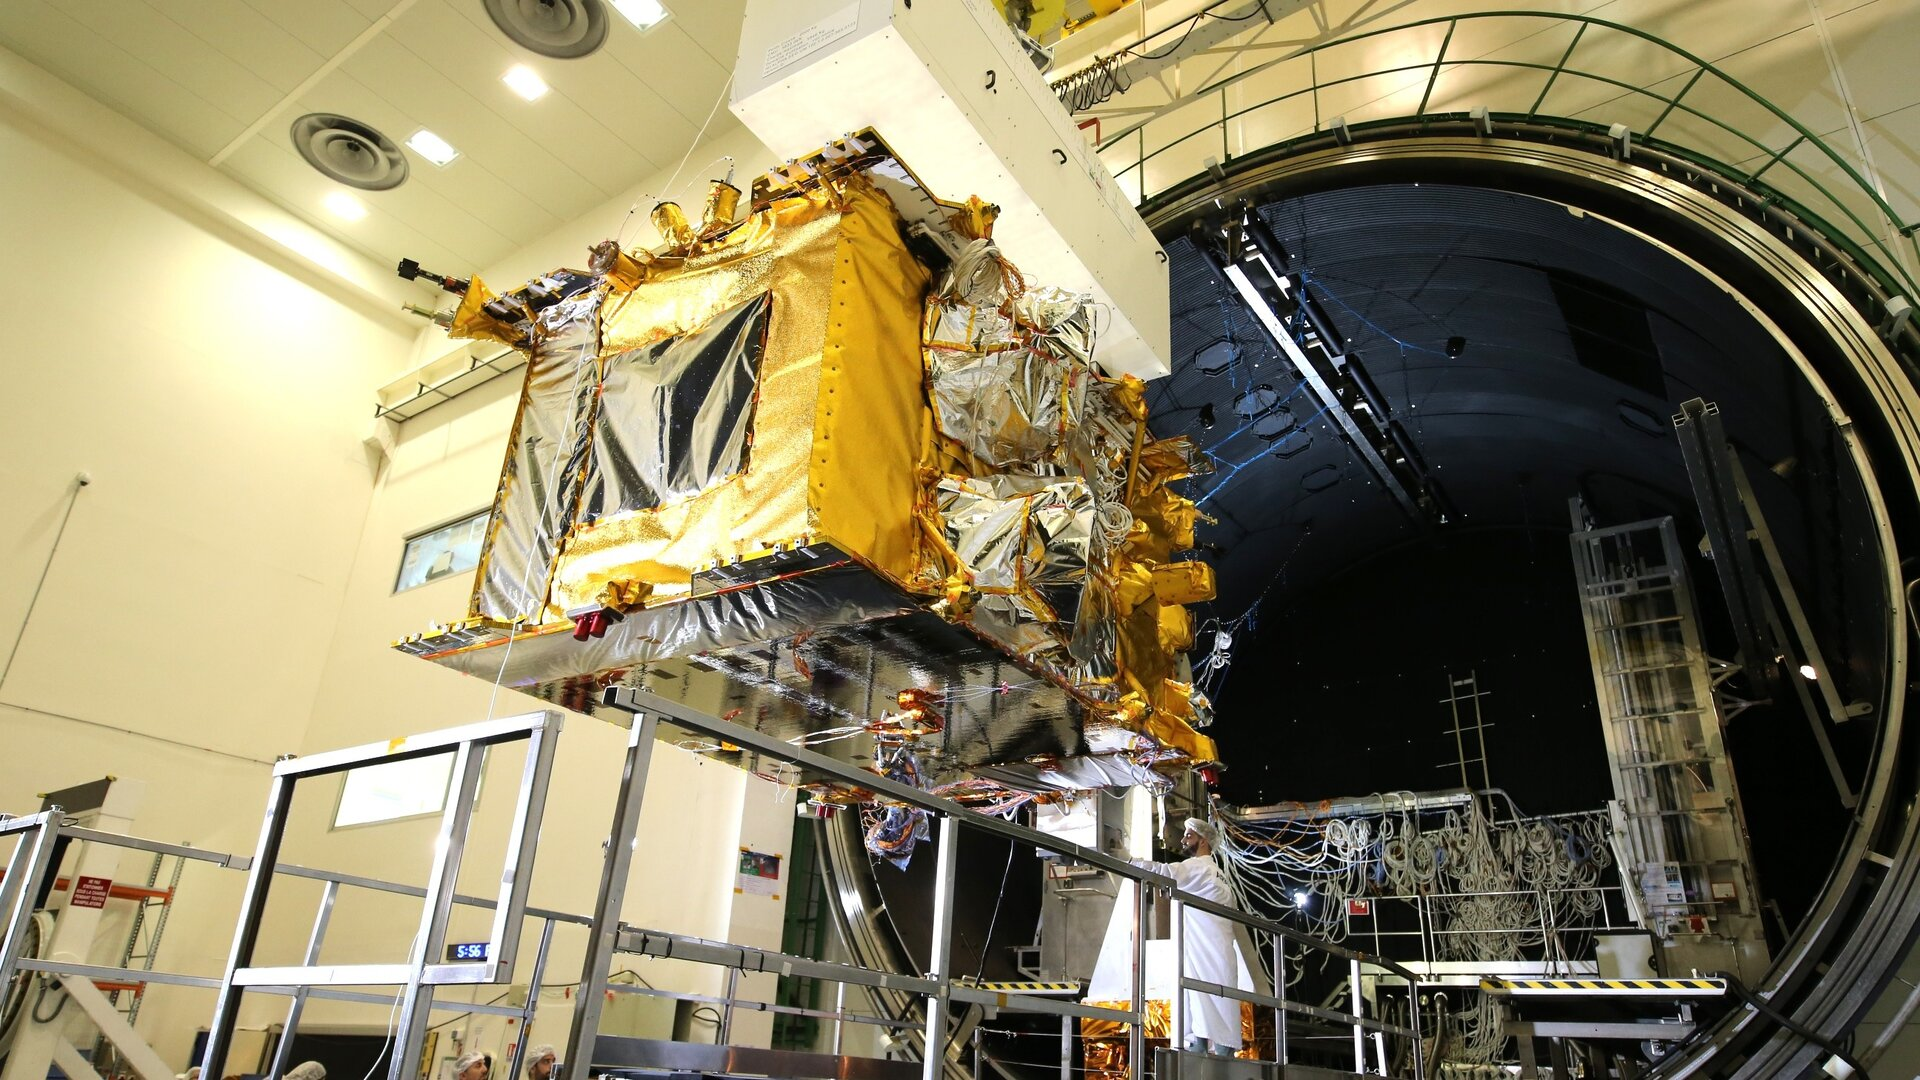 The Quantum spacecraft has been successfully tested in the thermal vacuum facility at Airbus in Toulouse